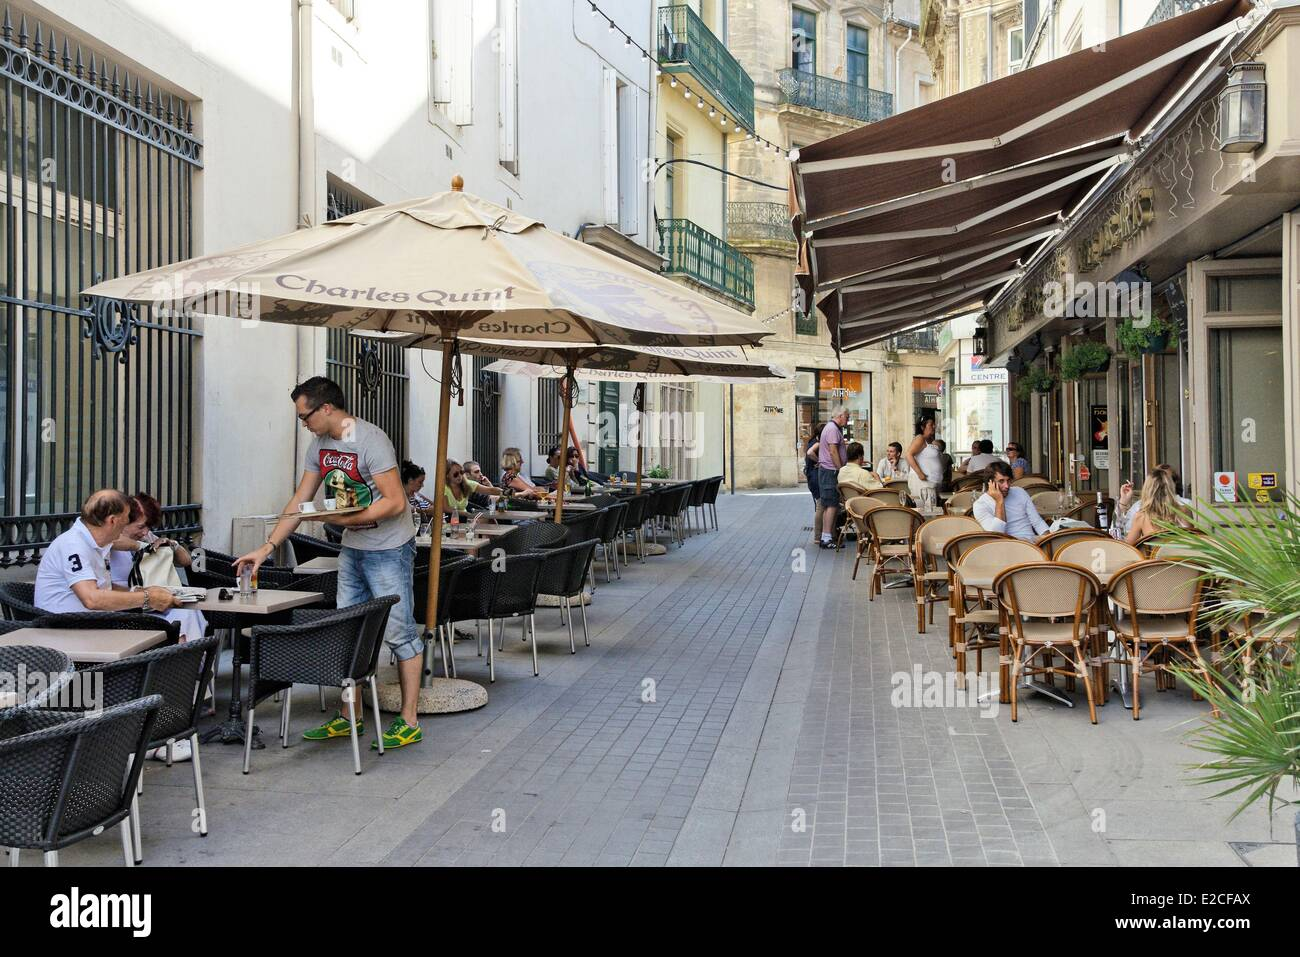 France, Herault, Beziers, Shell Street, the passers by in front of Cafe terraces - Stock Image